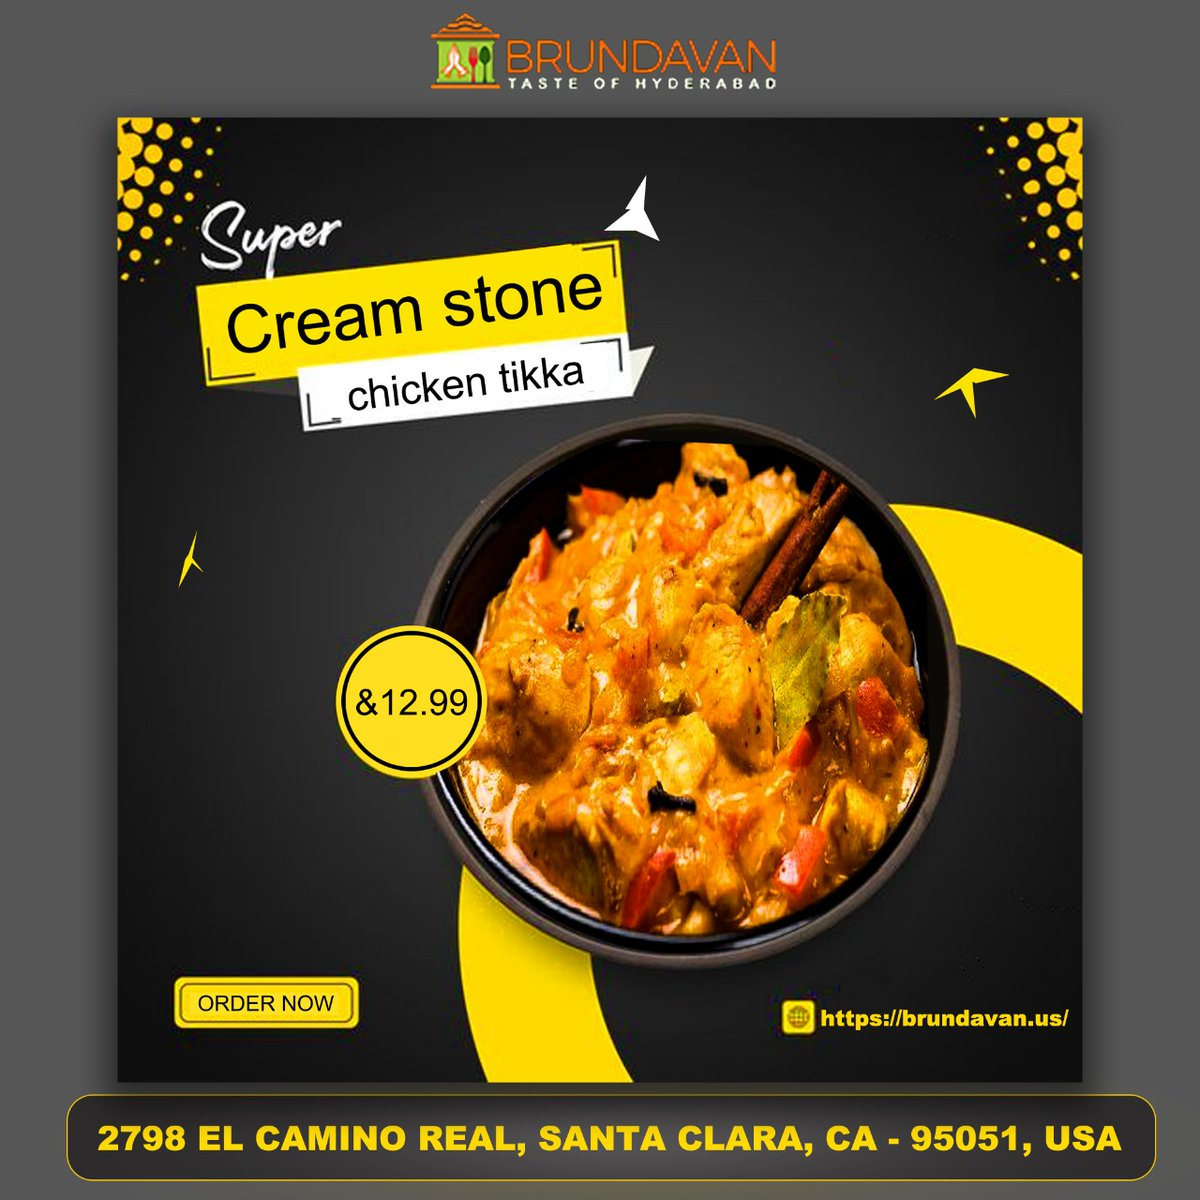 Order Now Today's Cream Stone Chicken tikka in Just 12.99$!  #CreamStoneChickentikka #CreamStone #Chickentikka #Nonveg #restaurant  #brundavanus #mealbrite #food #foodie #instafood #Linch #dinner #yummy  #delicious #foodlover  #foodstagram #instagood #cafe  #chef #hotel #love https://t.co/frJm342Xig